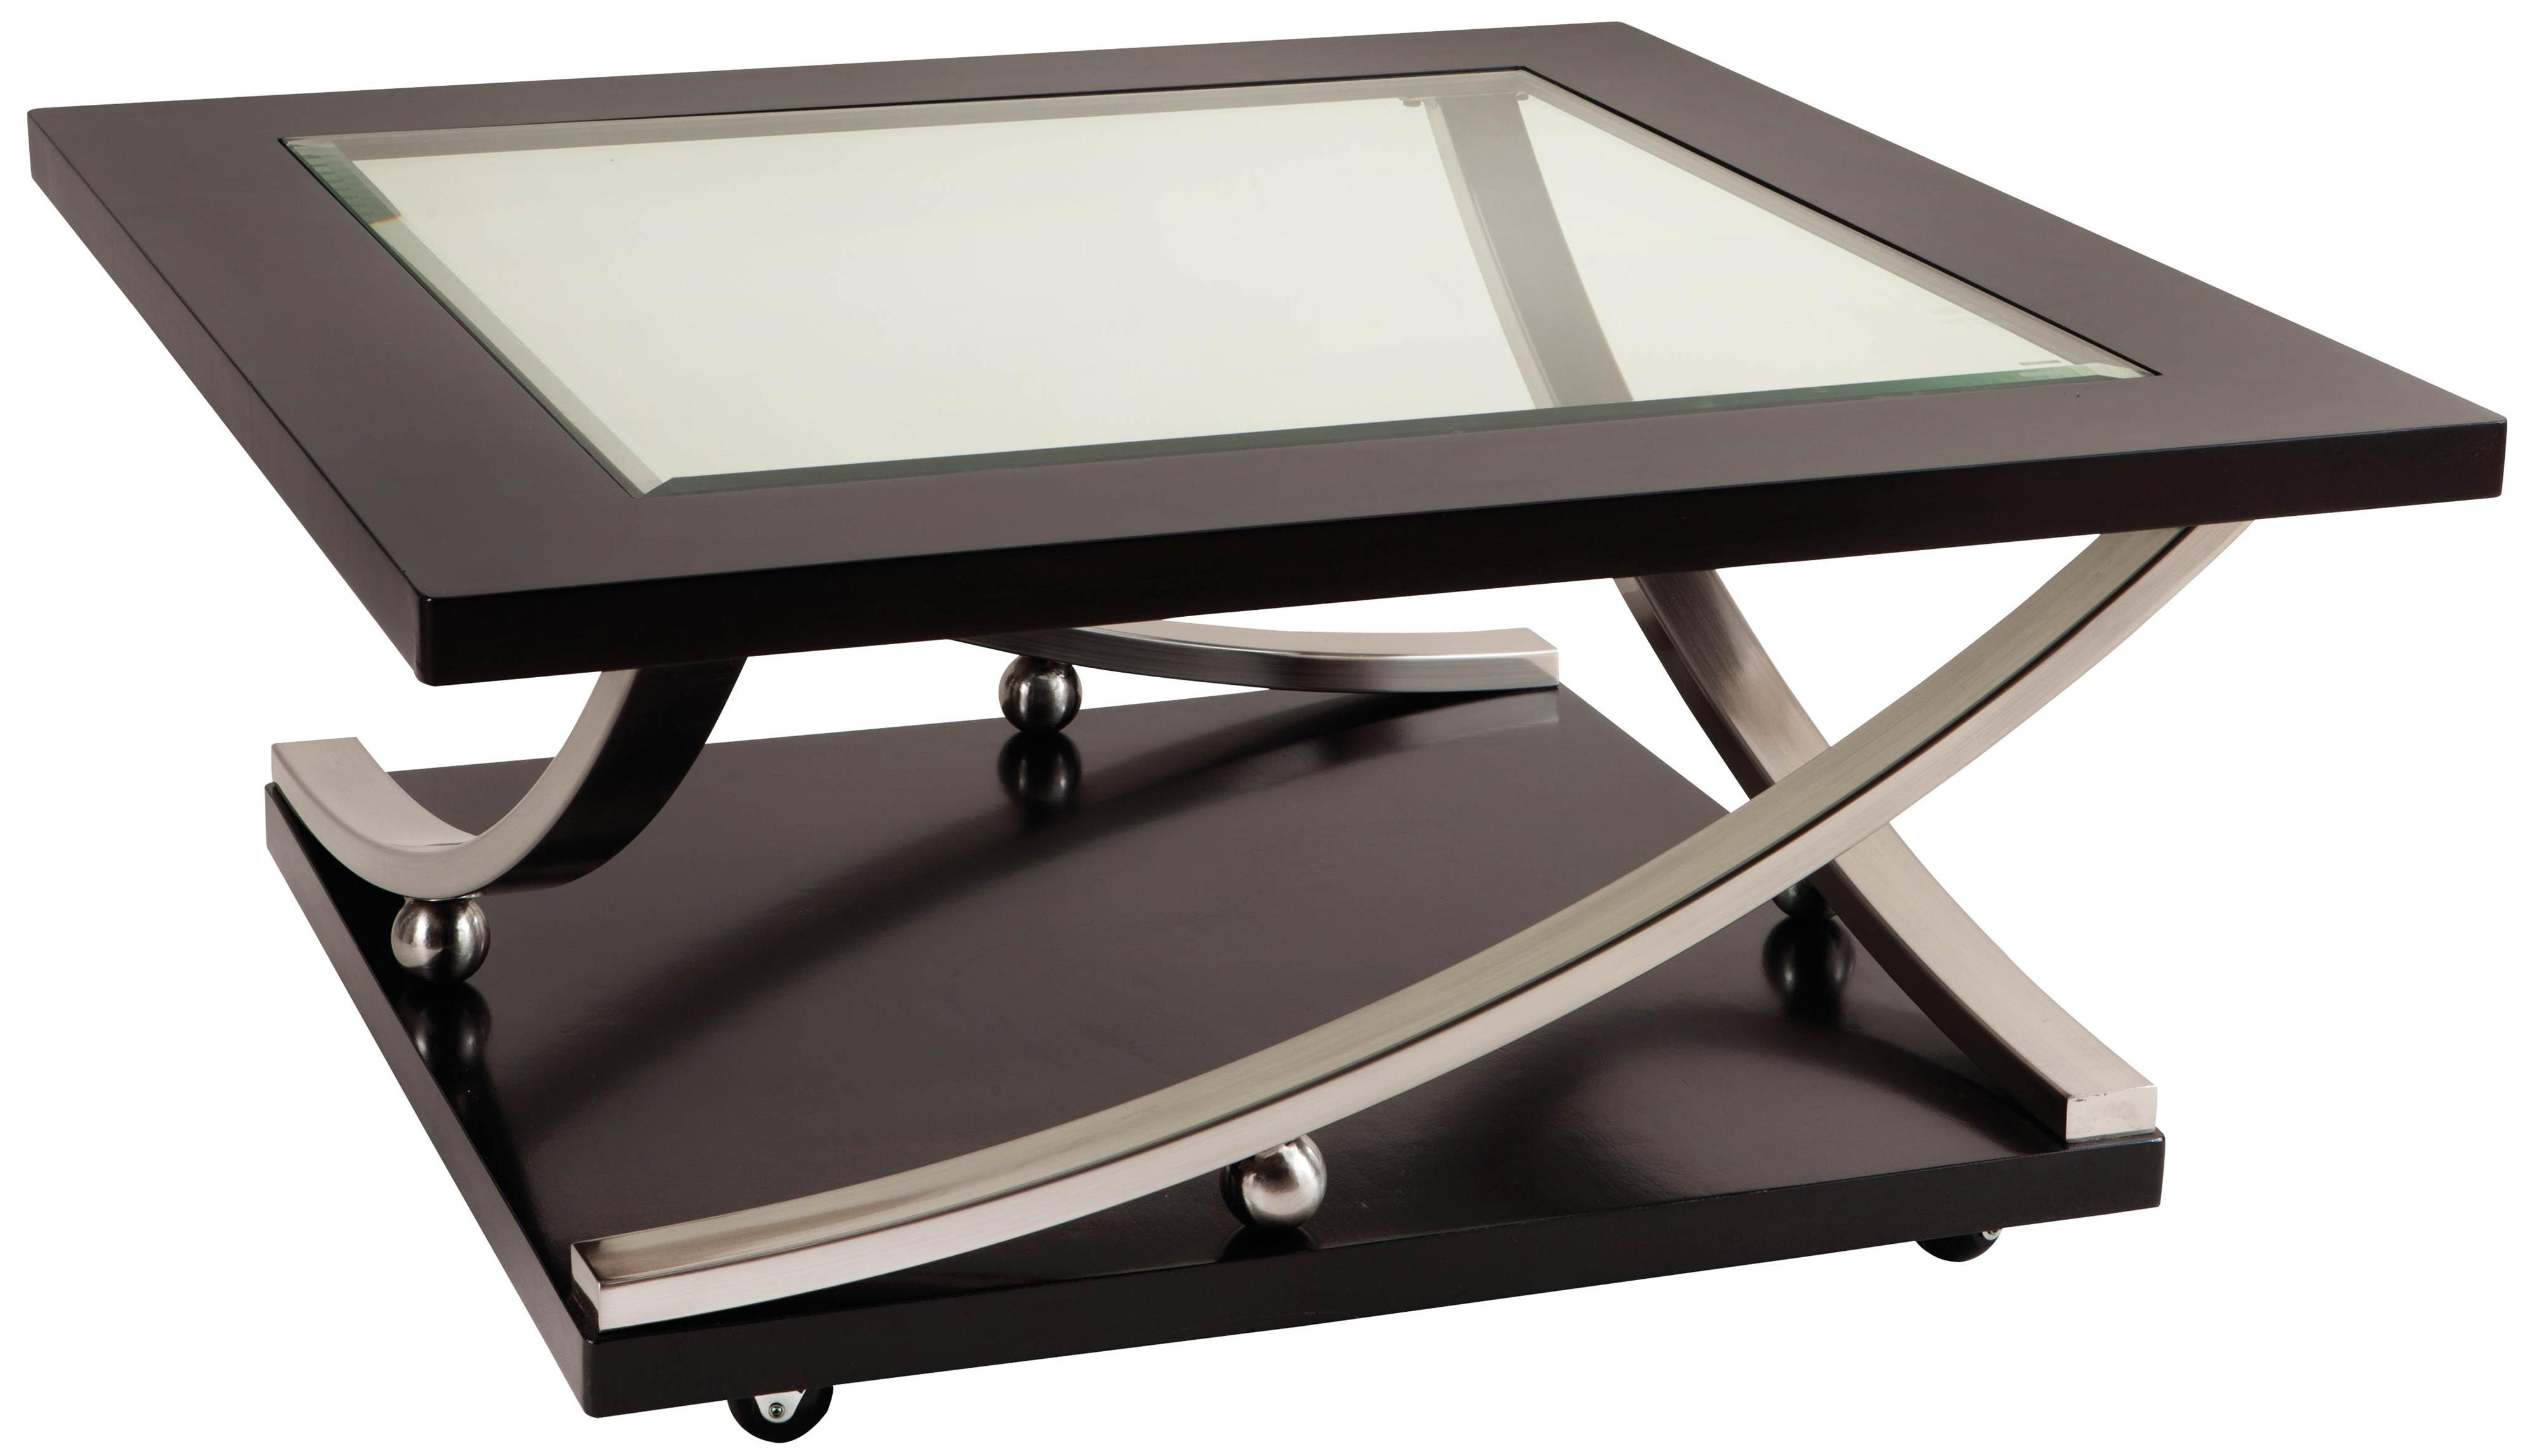 Square Glass Top Cocktail Table with Casters by Standard Furniture